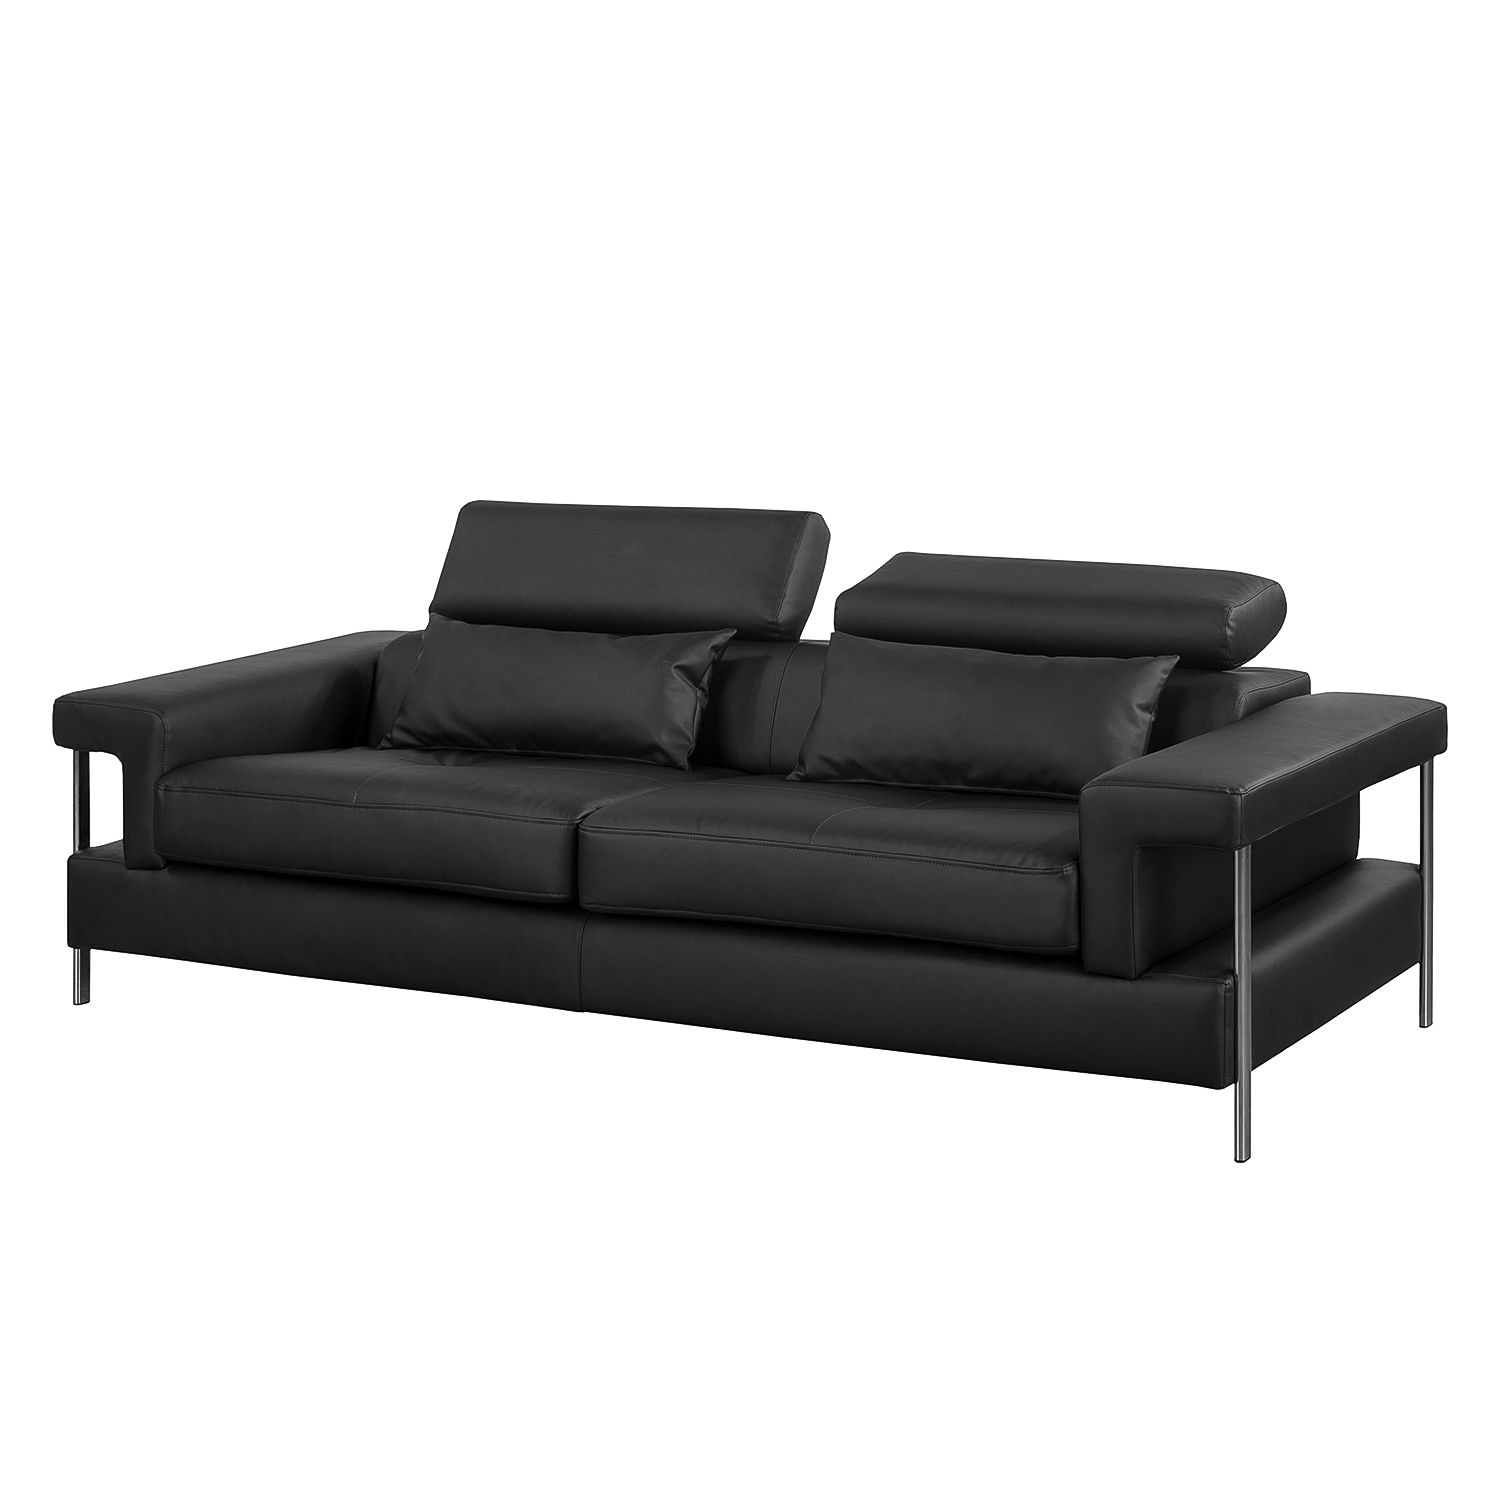 sofa skibsby 3 sitzer kunstleder schwarz roomscape. Black Bedroom Furniture Sets. Home Design Ideas